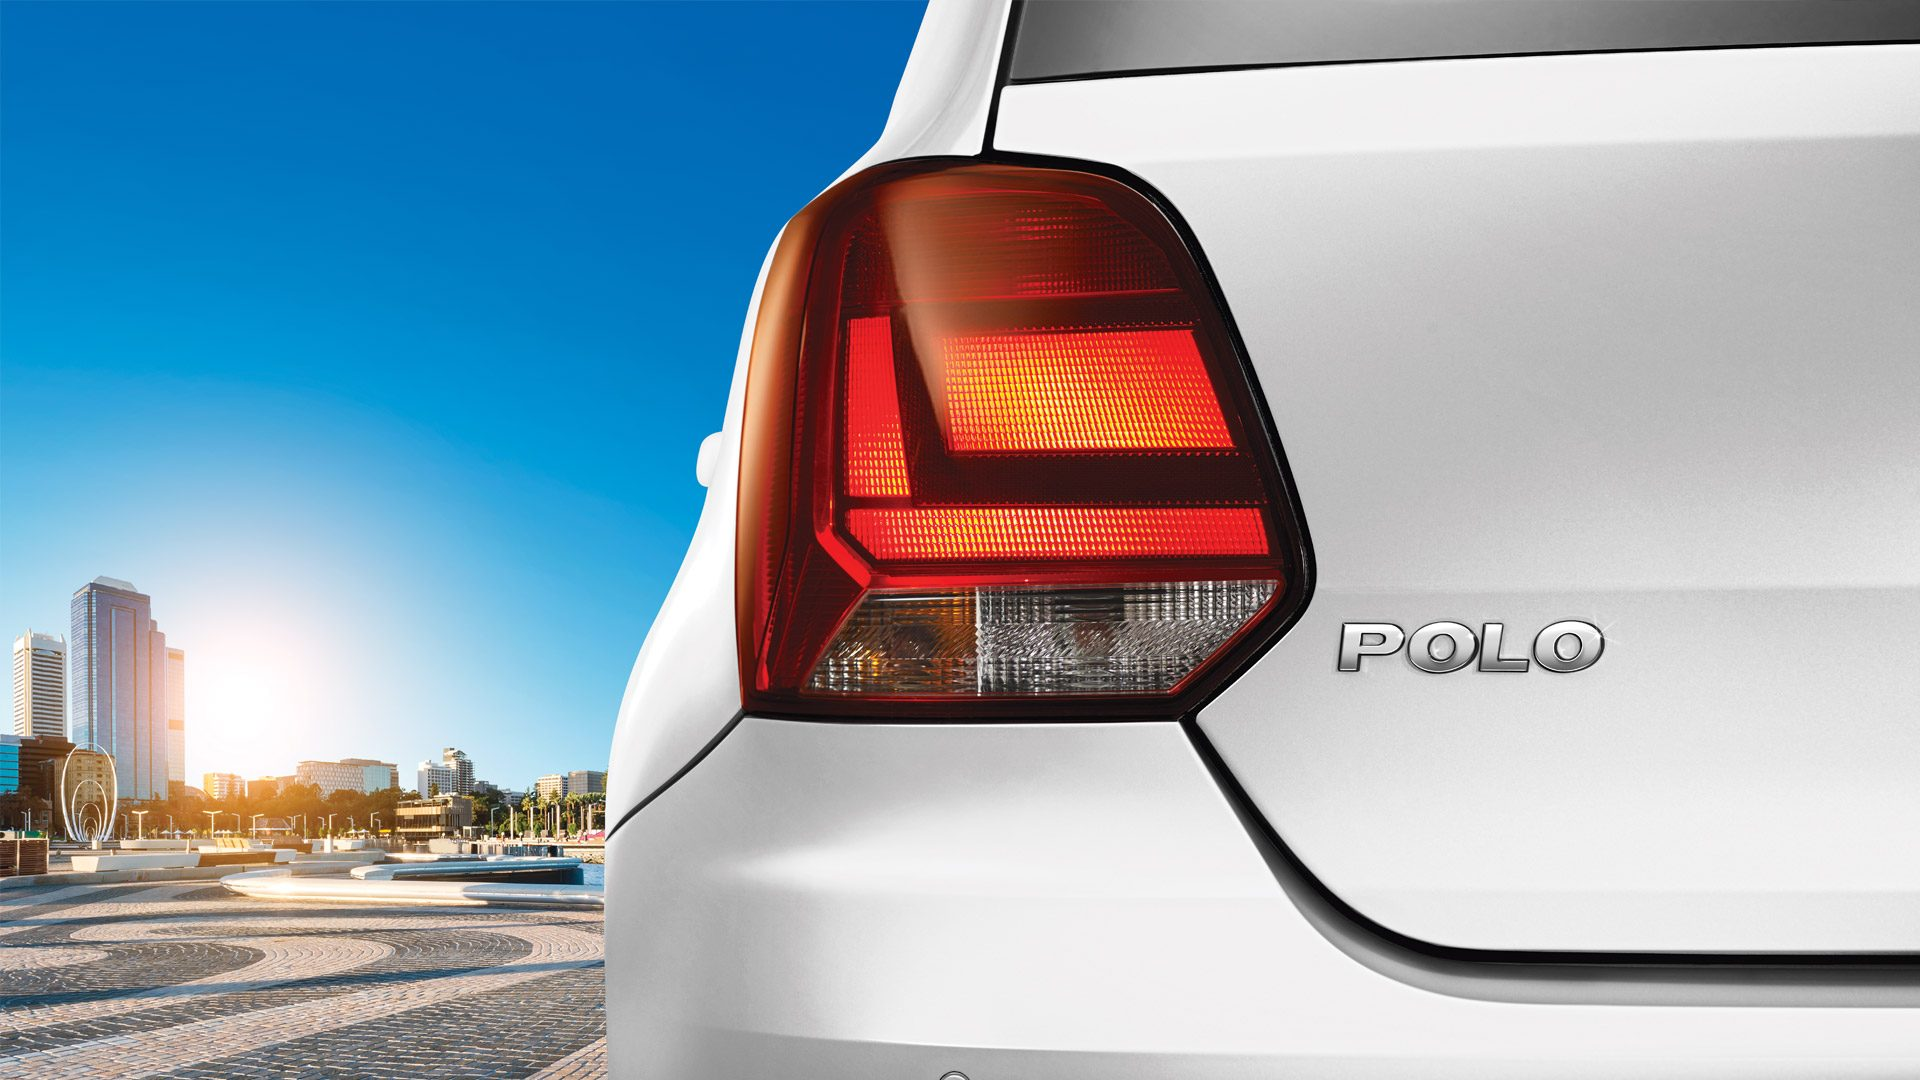 Volkswagen Polo Now With 1 0l Petrol Motor With 18 78 Kmpl Mileage Shifting Gears